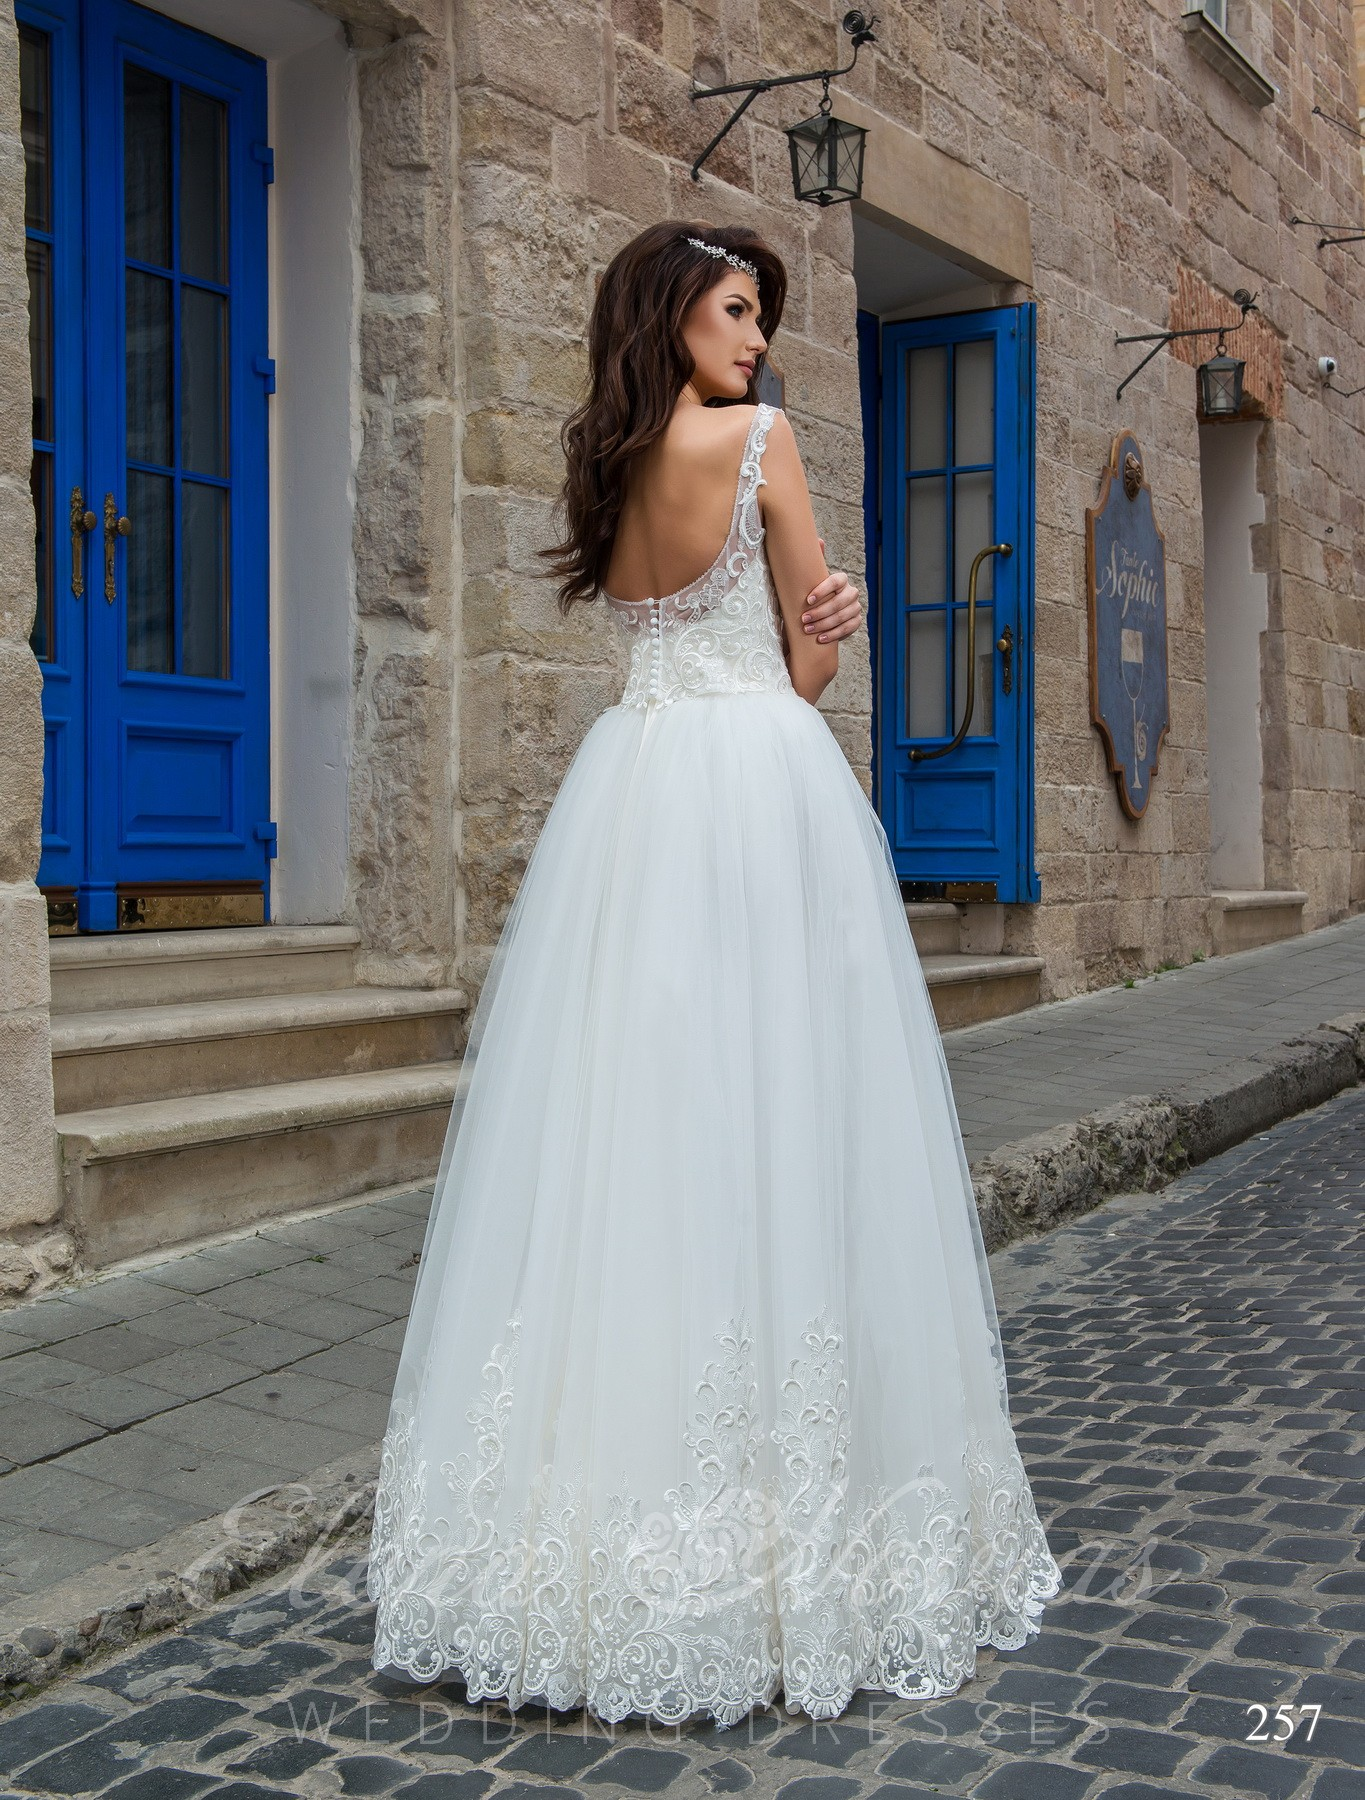 Wedding dress with a deep neckline model 257